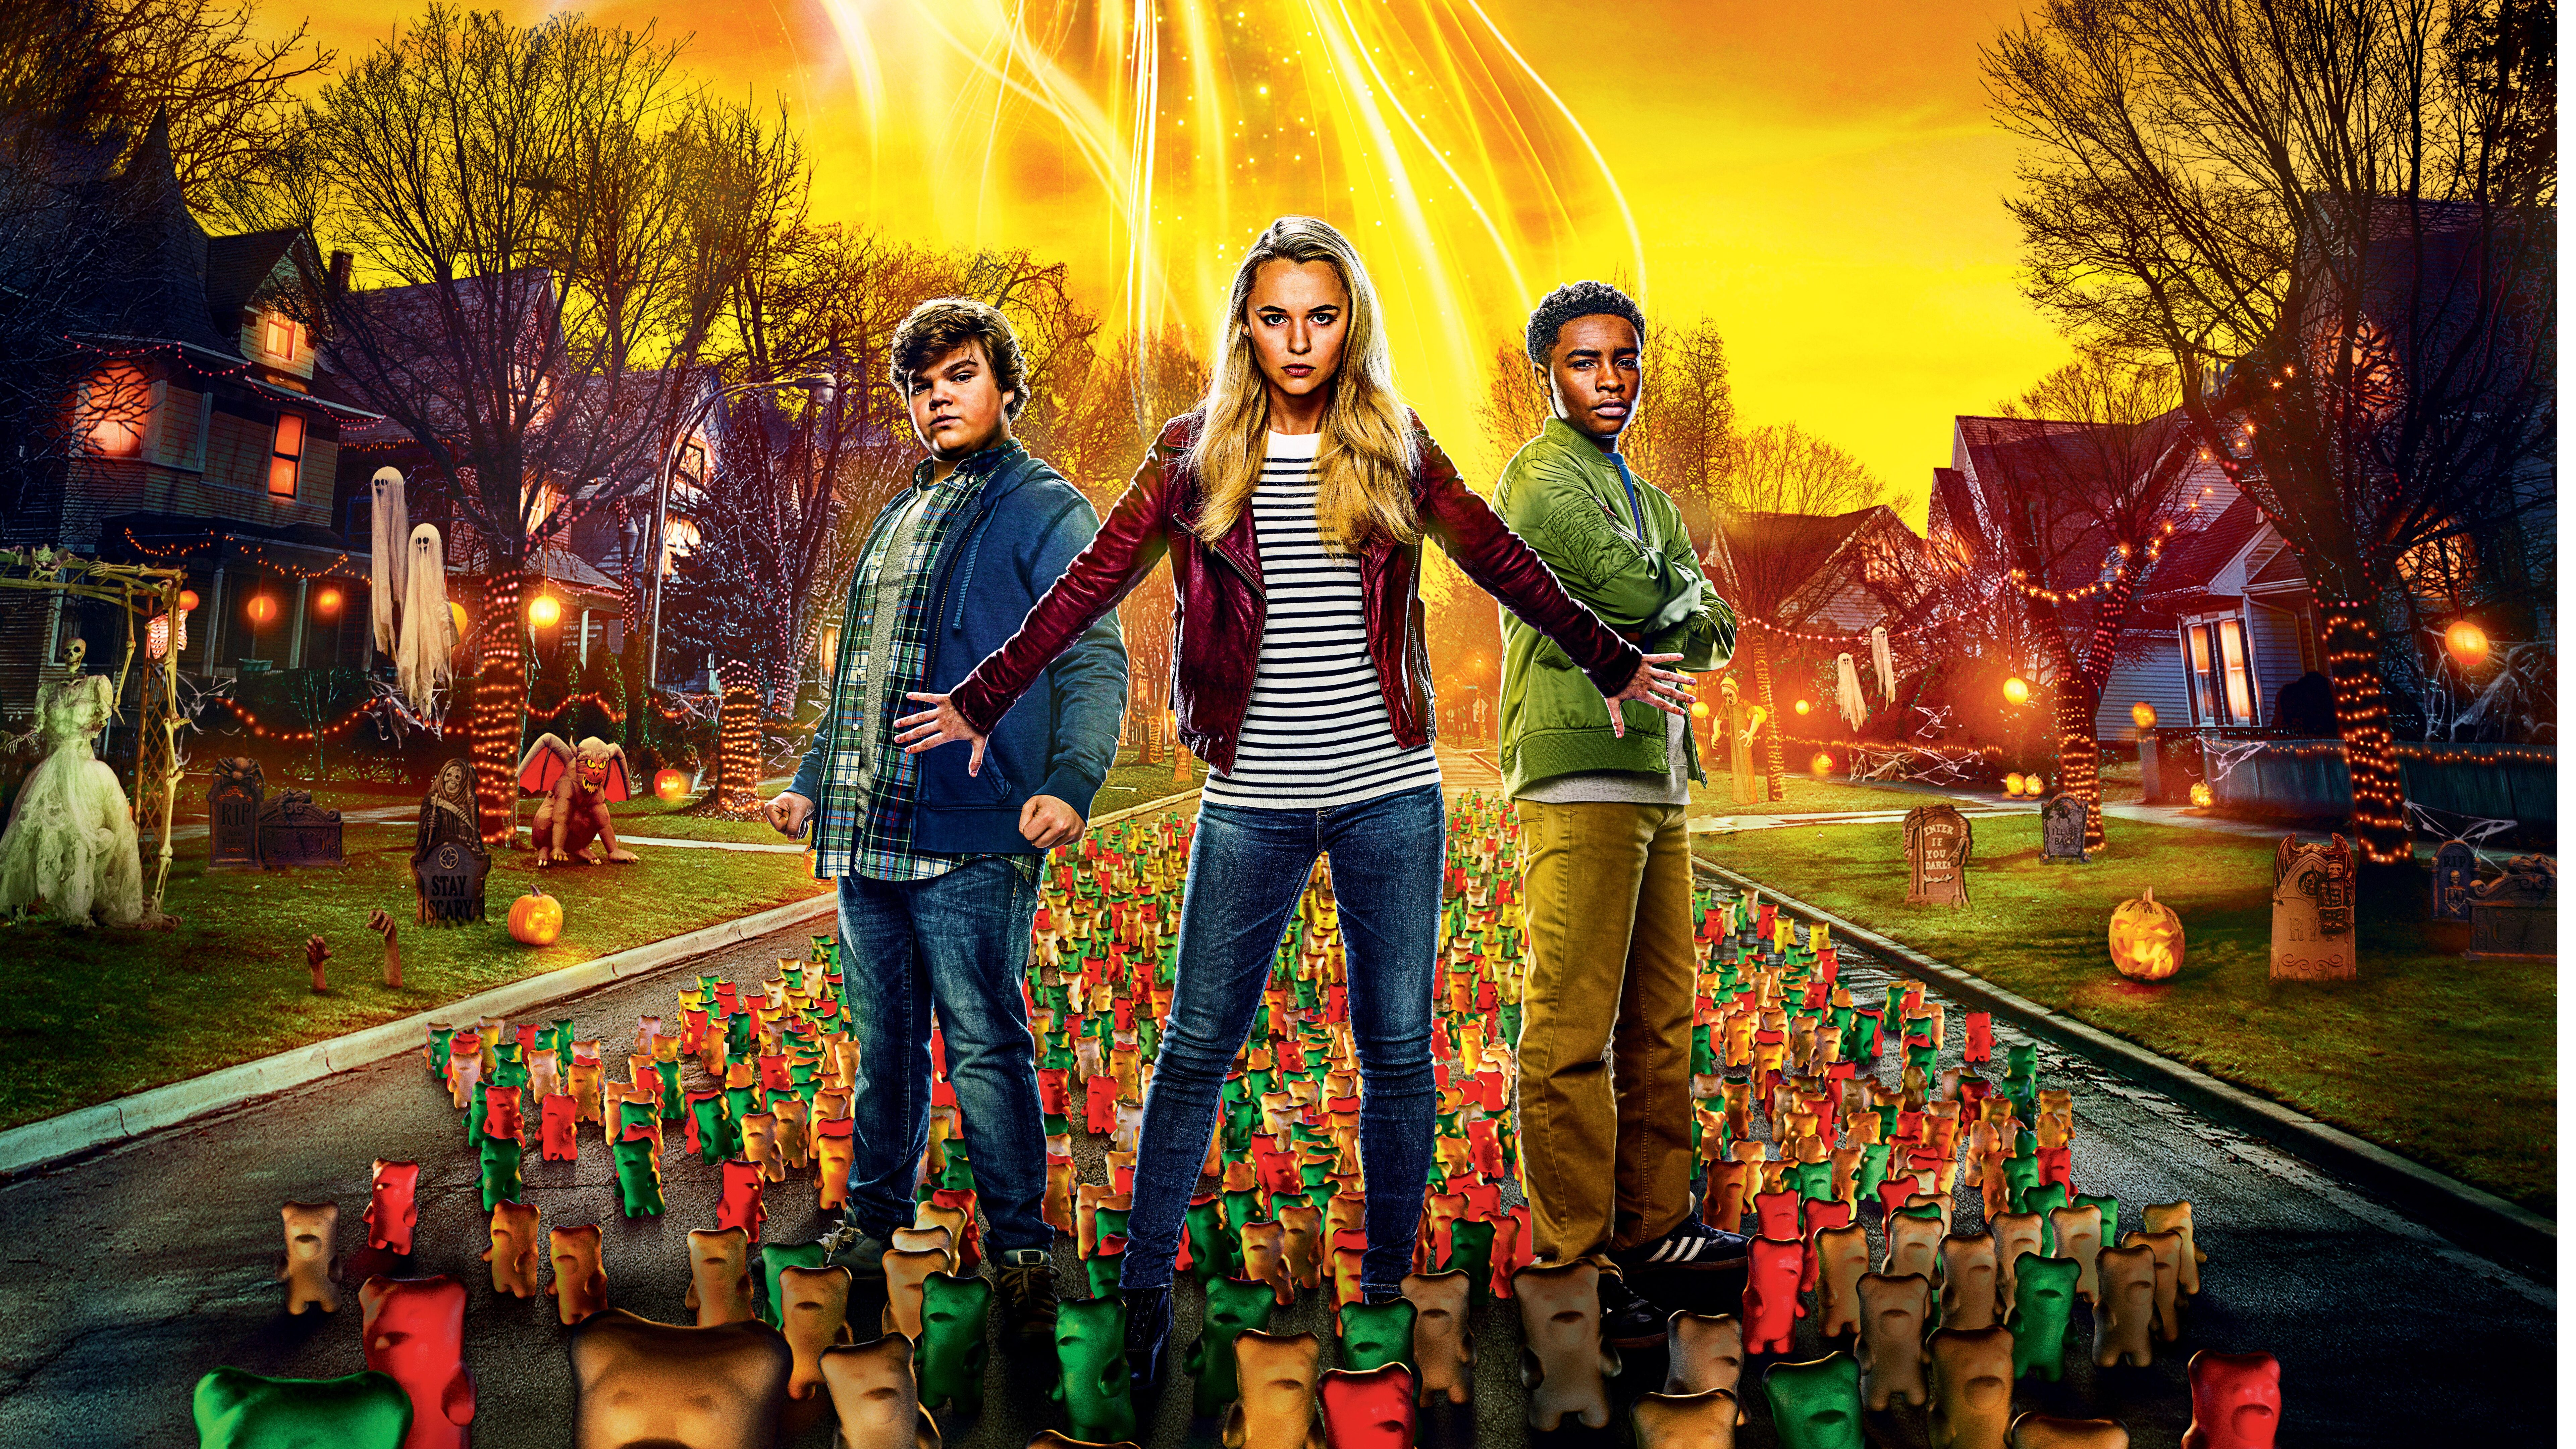 7680x4320 Goosebumps 2 Haunted Halloween 8k 8k Hd 4k Wallpapers Images Backgrounds Photos And Pictures